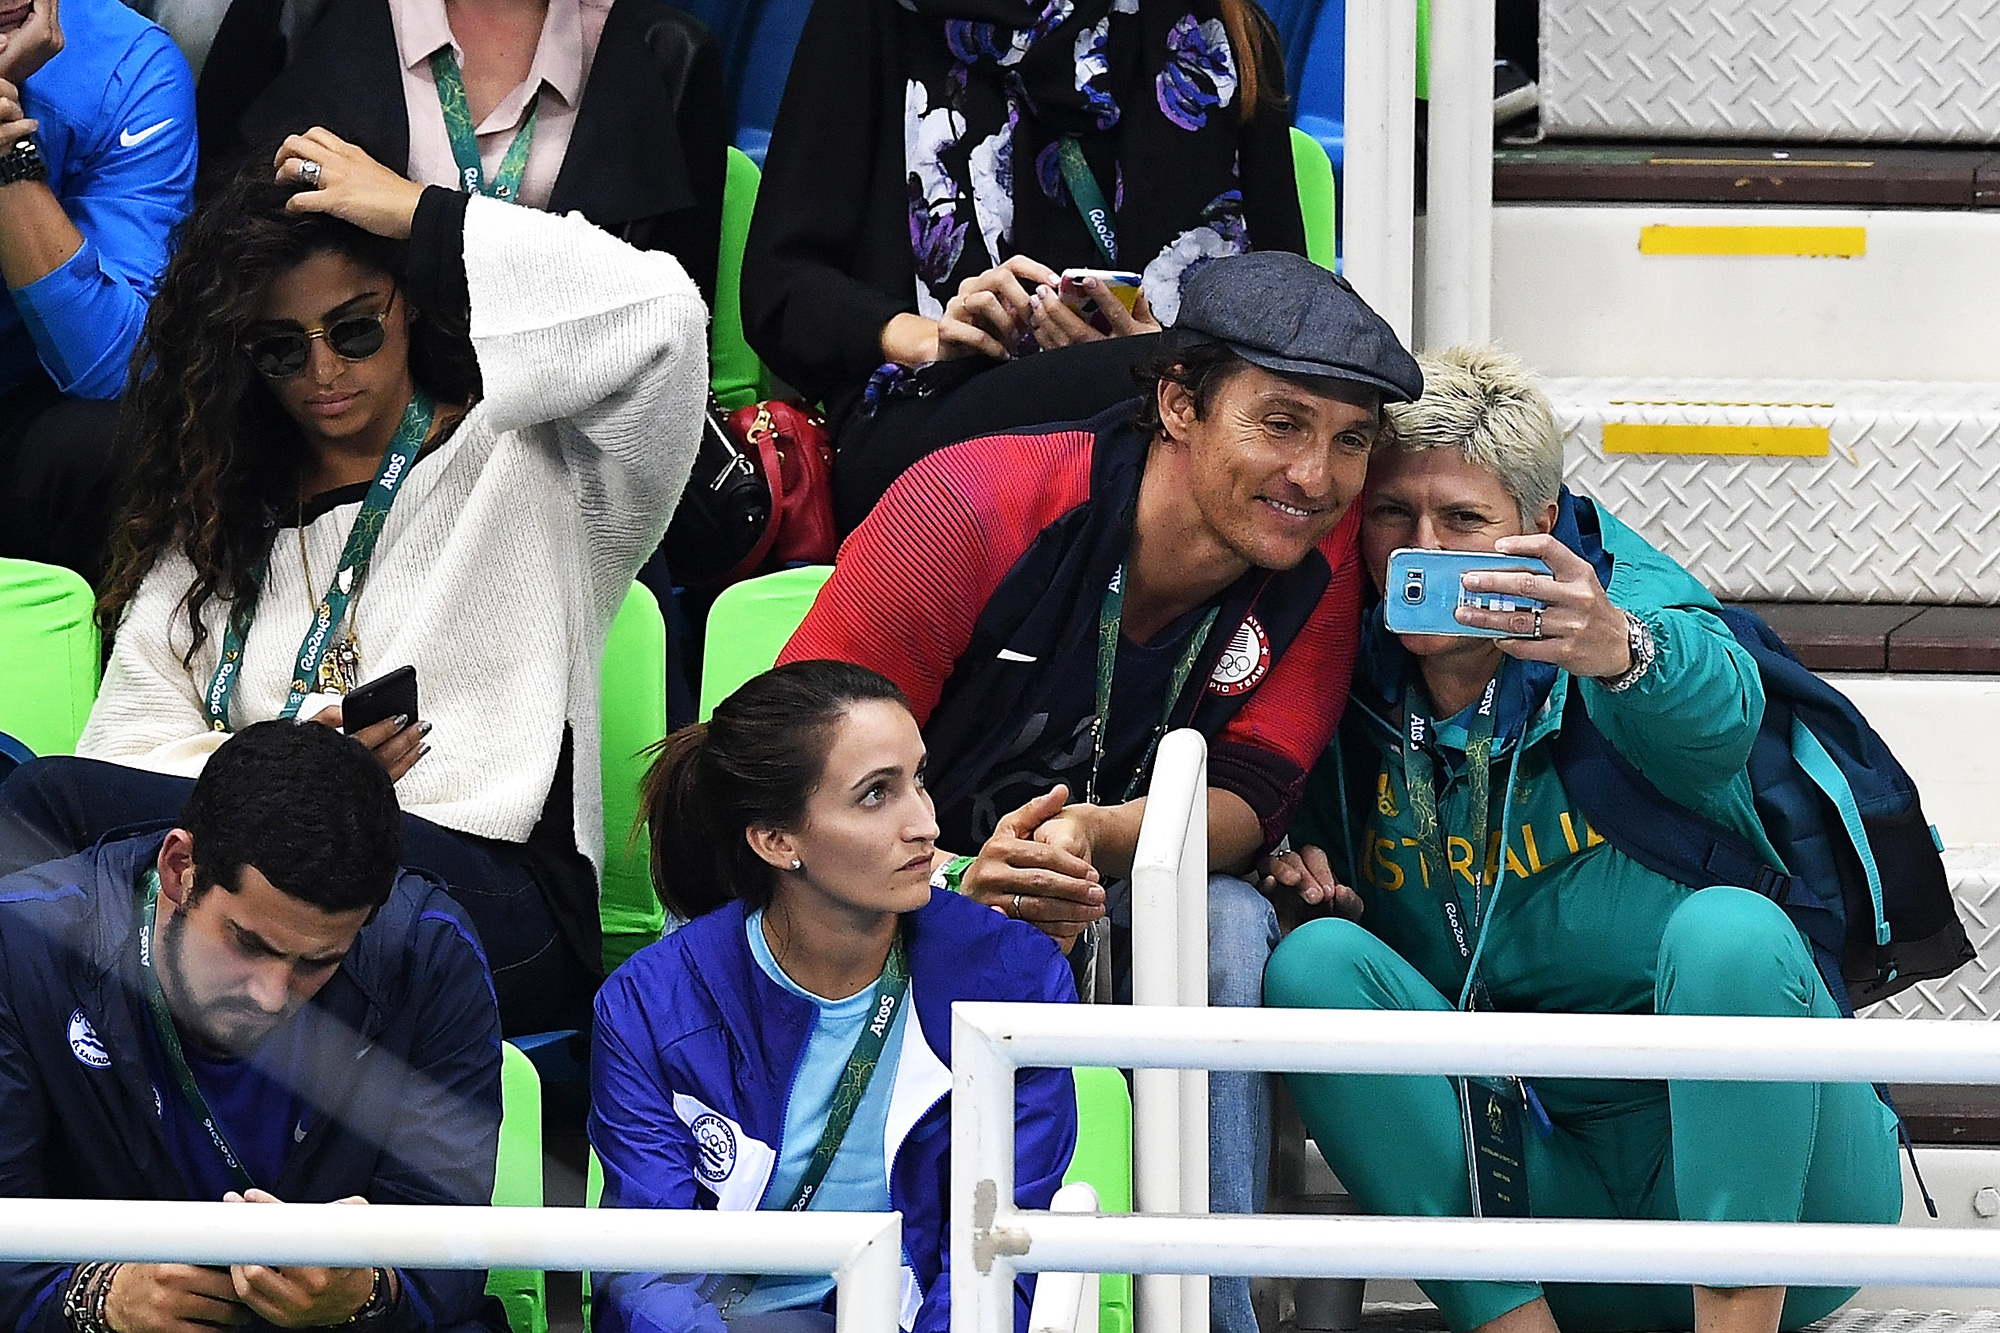 Matthew McConaughey takes a selfie with a guest during the swimming semifinals and finals on Day 5 of the Rio 2016 Olympic Games, on Aug. 9, 2016 in Rio de Janeiro, Brazil.